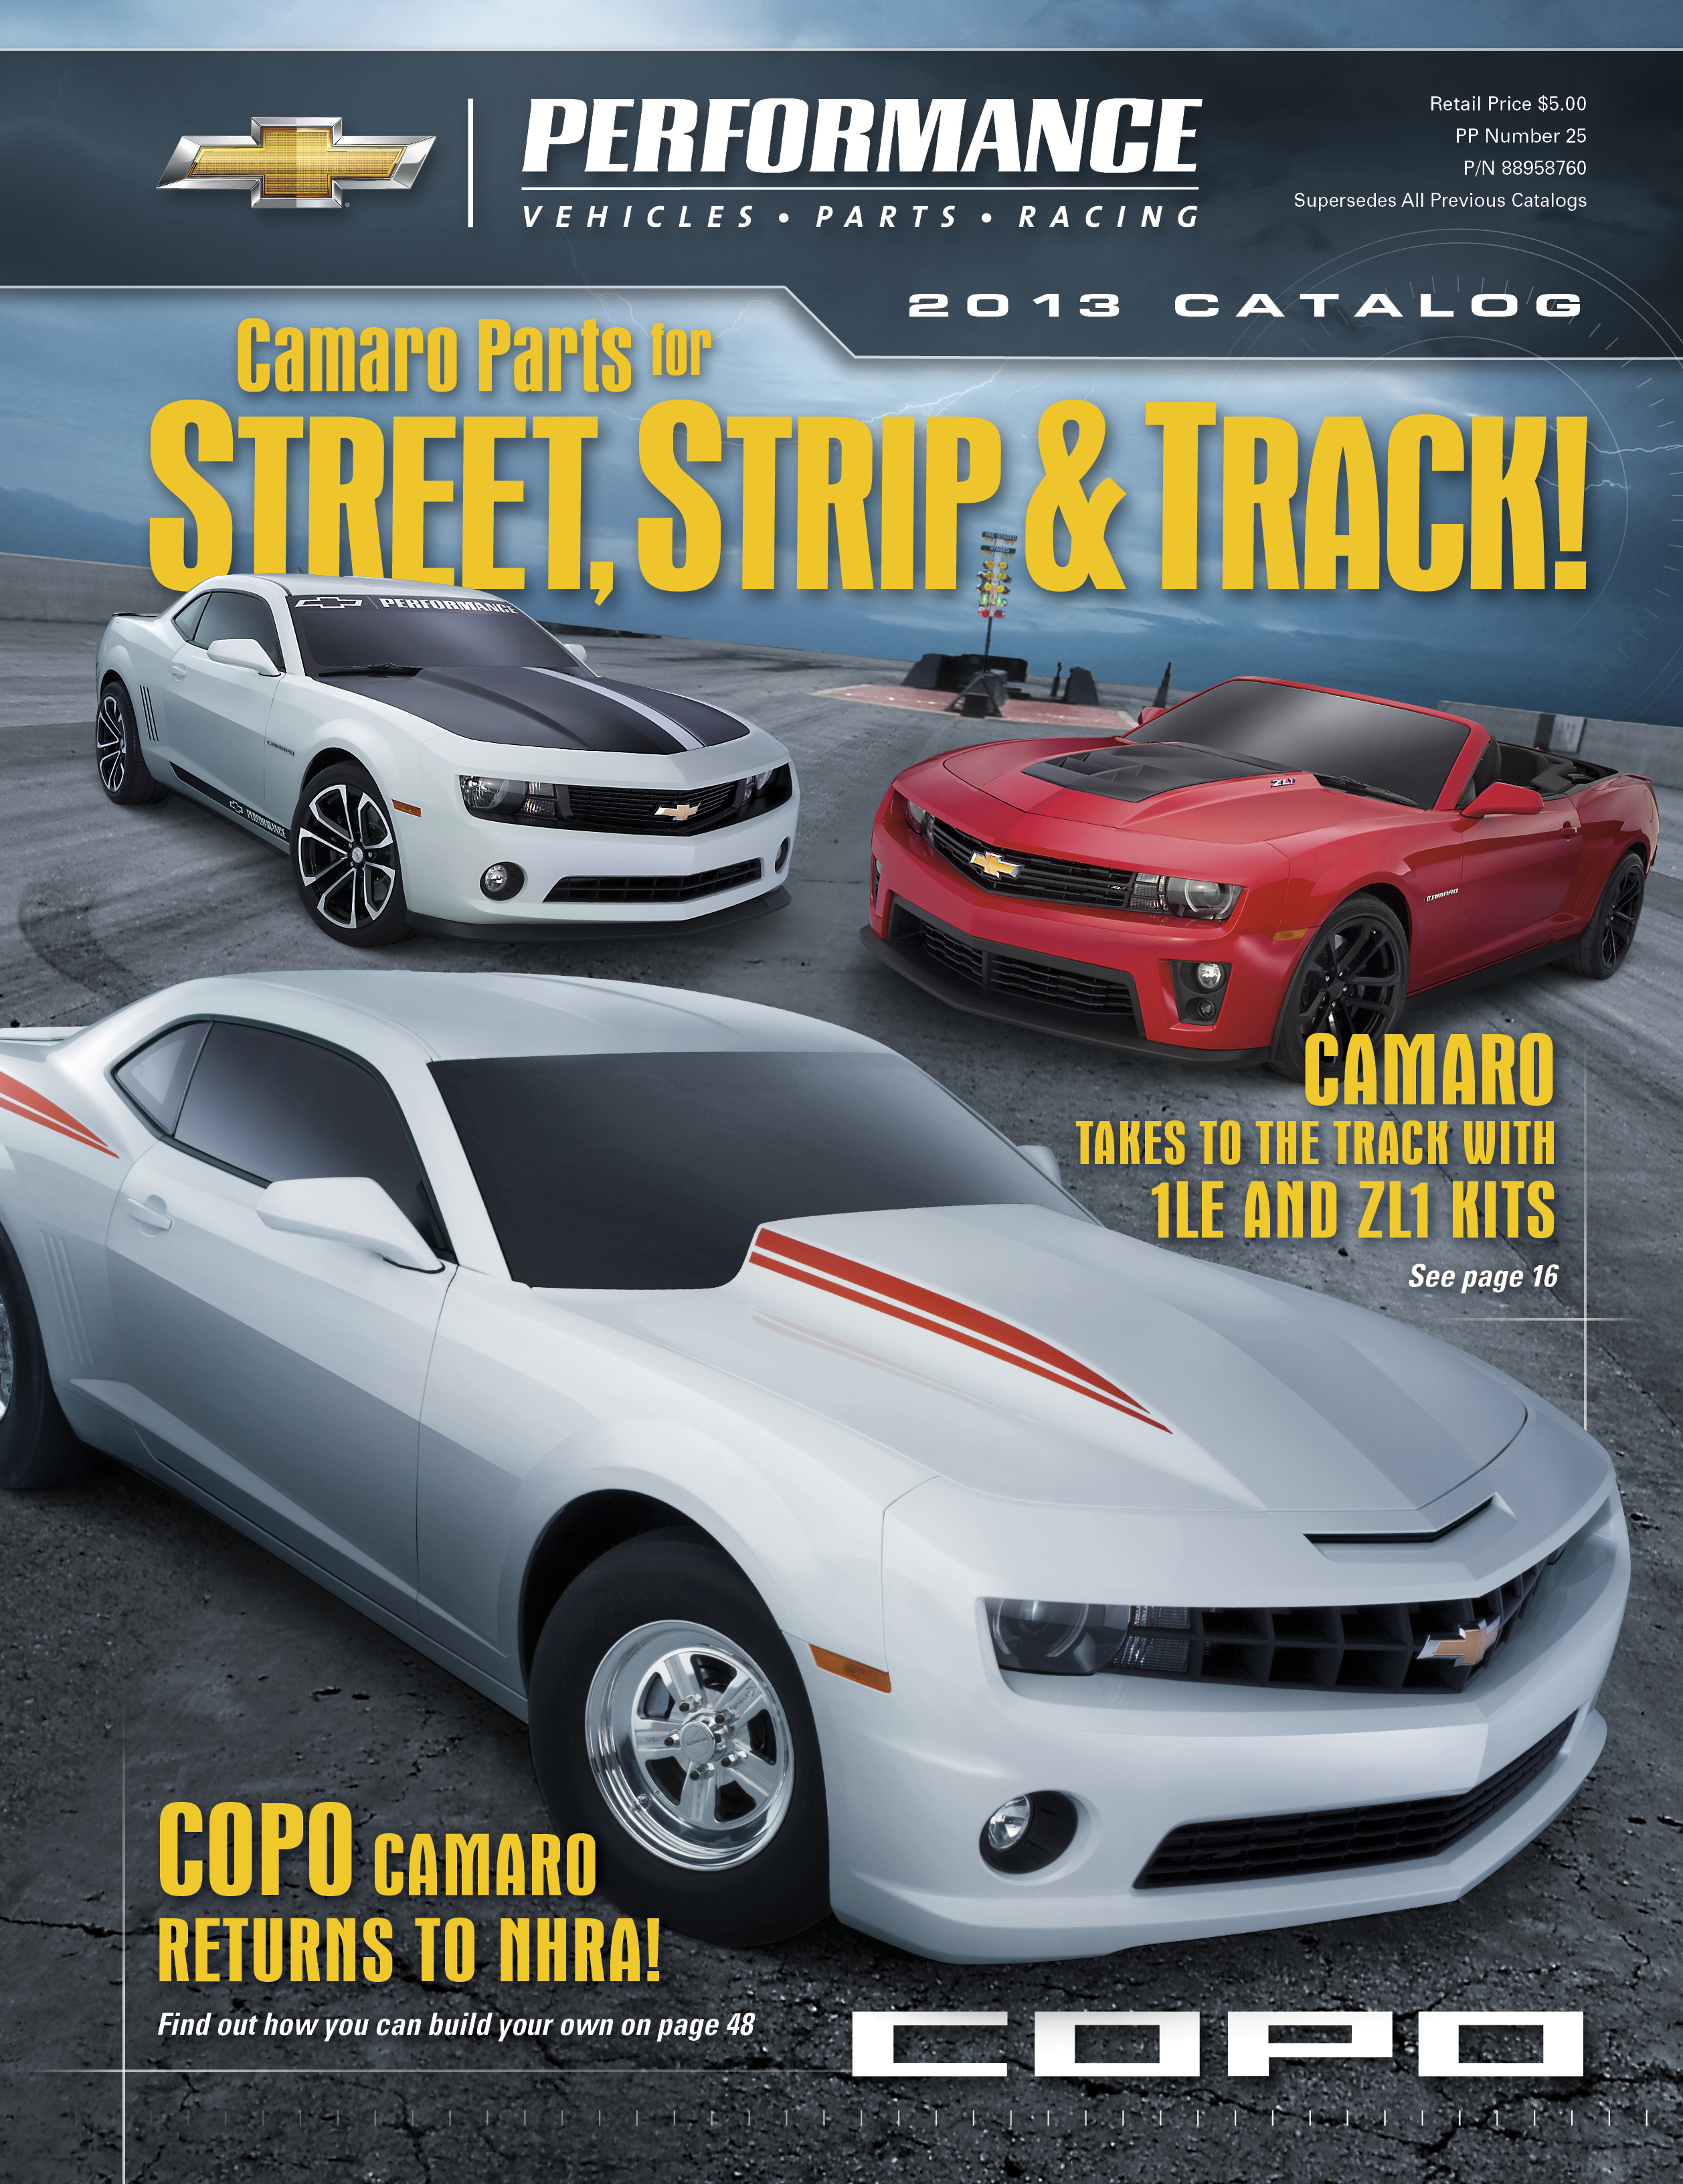 2017 Chevrolet Performance Catalog Features New Camaro Parts For The Street Strip And Road Course